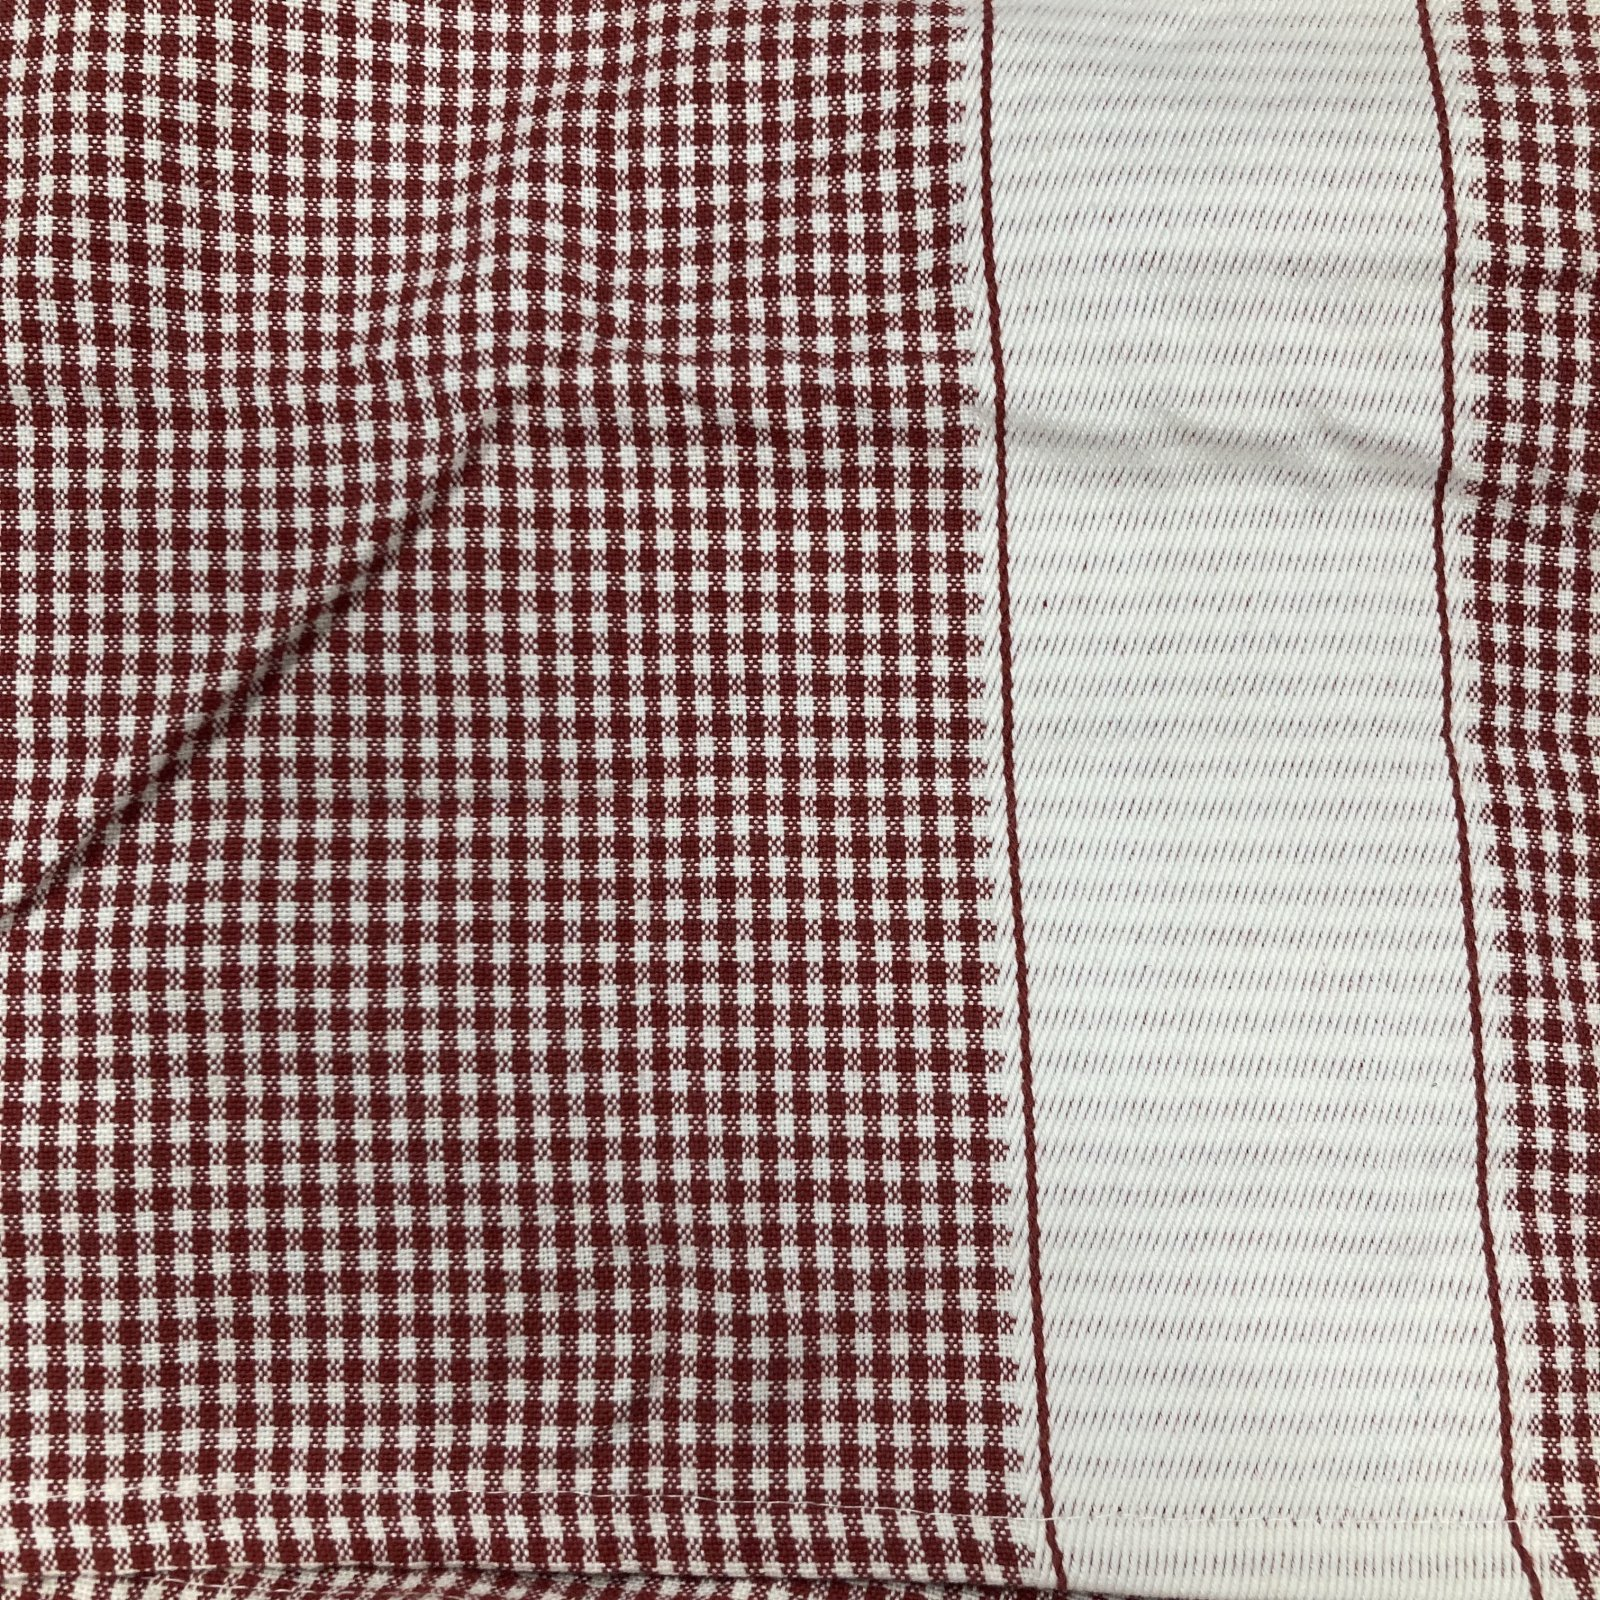 Dunroven House Tea TowelRed/Cream Gingham w/ accent stripe